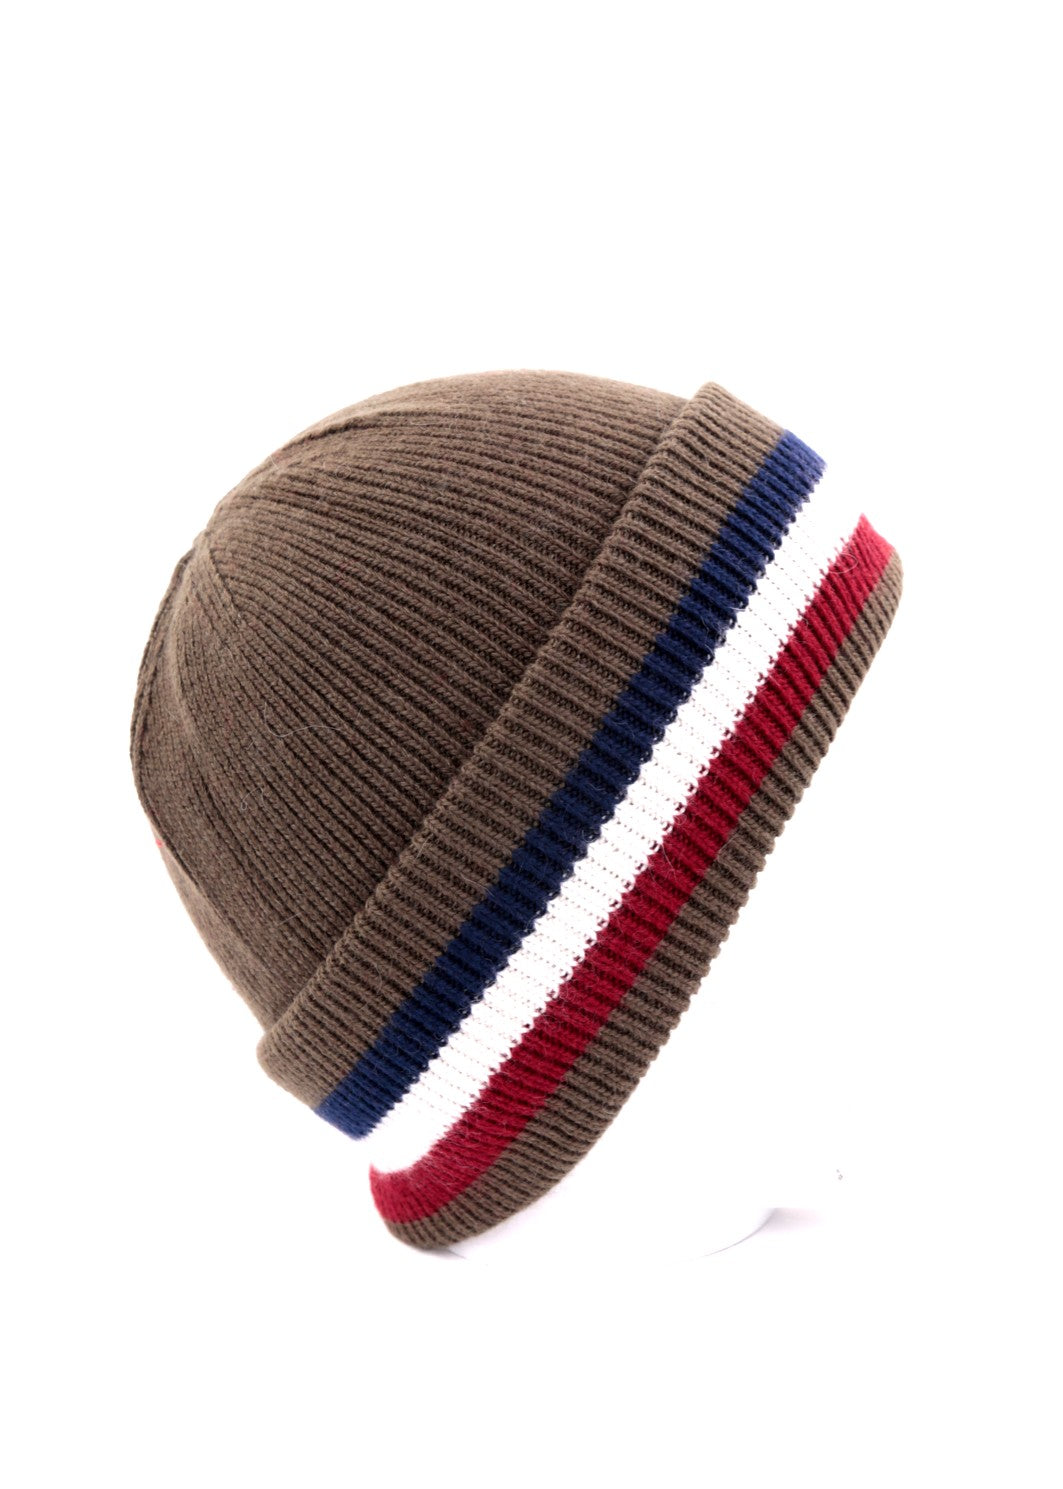 MARTA - Cashmere Beanie Knit Hat - SOLD OUT